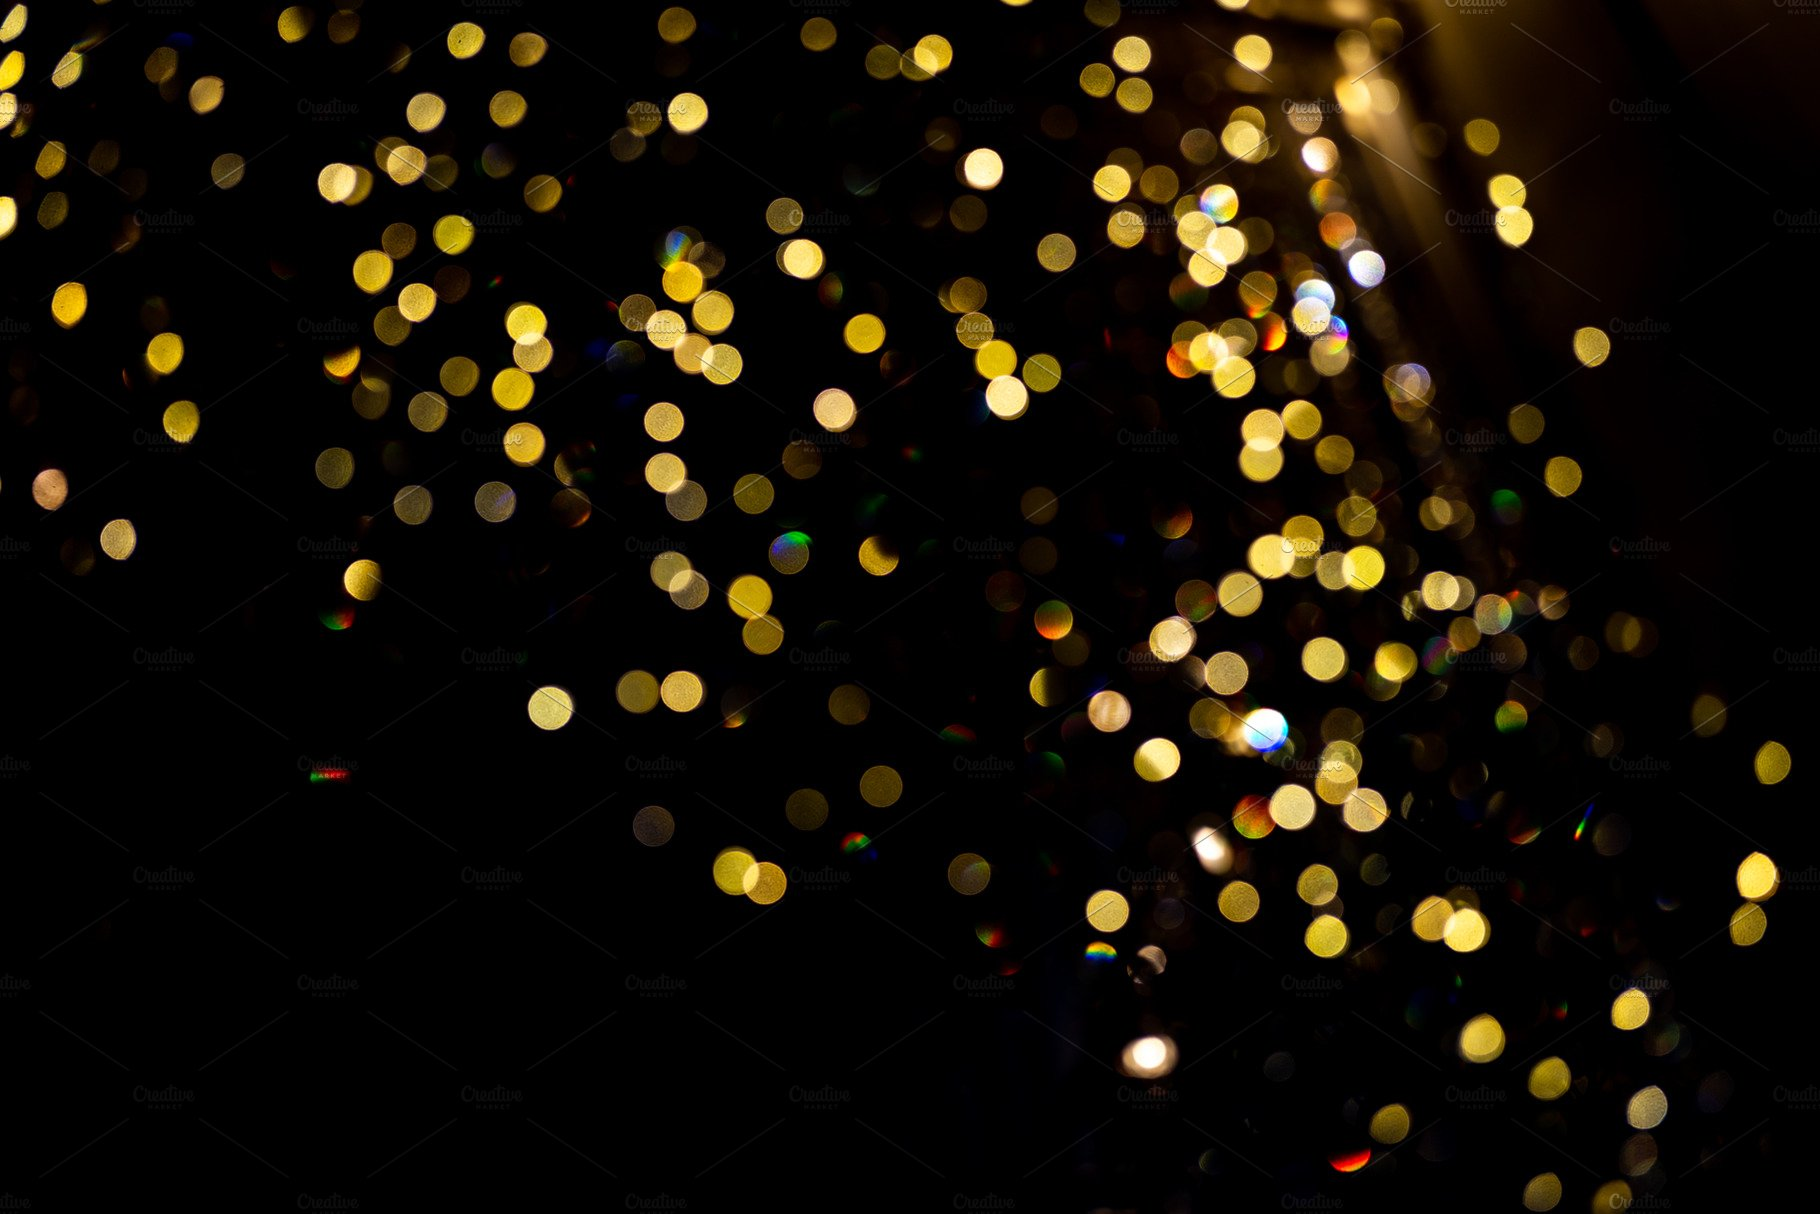 abstract bokeh made from xmas lights high quality abstract stock photos creative market abstract bokeh made from xmas lights